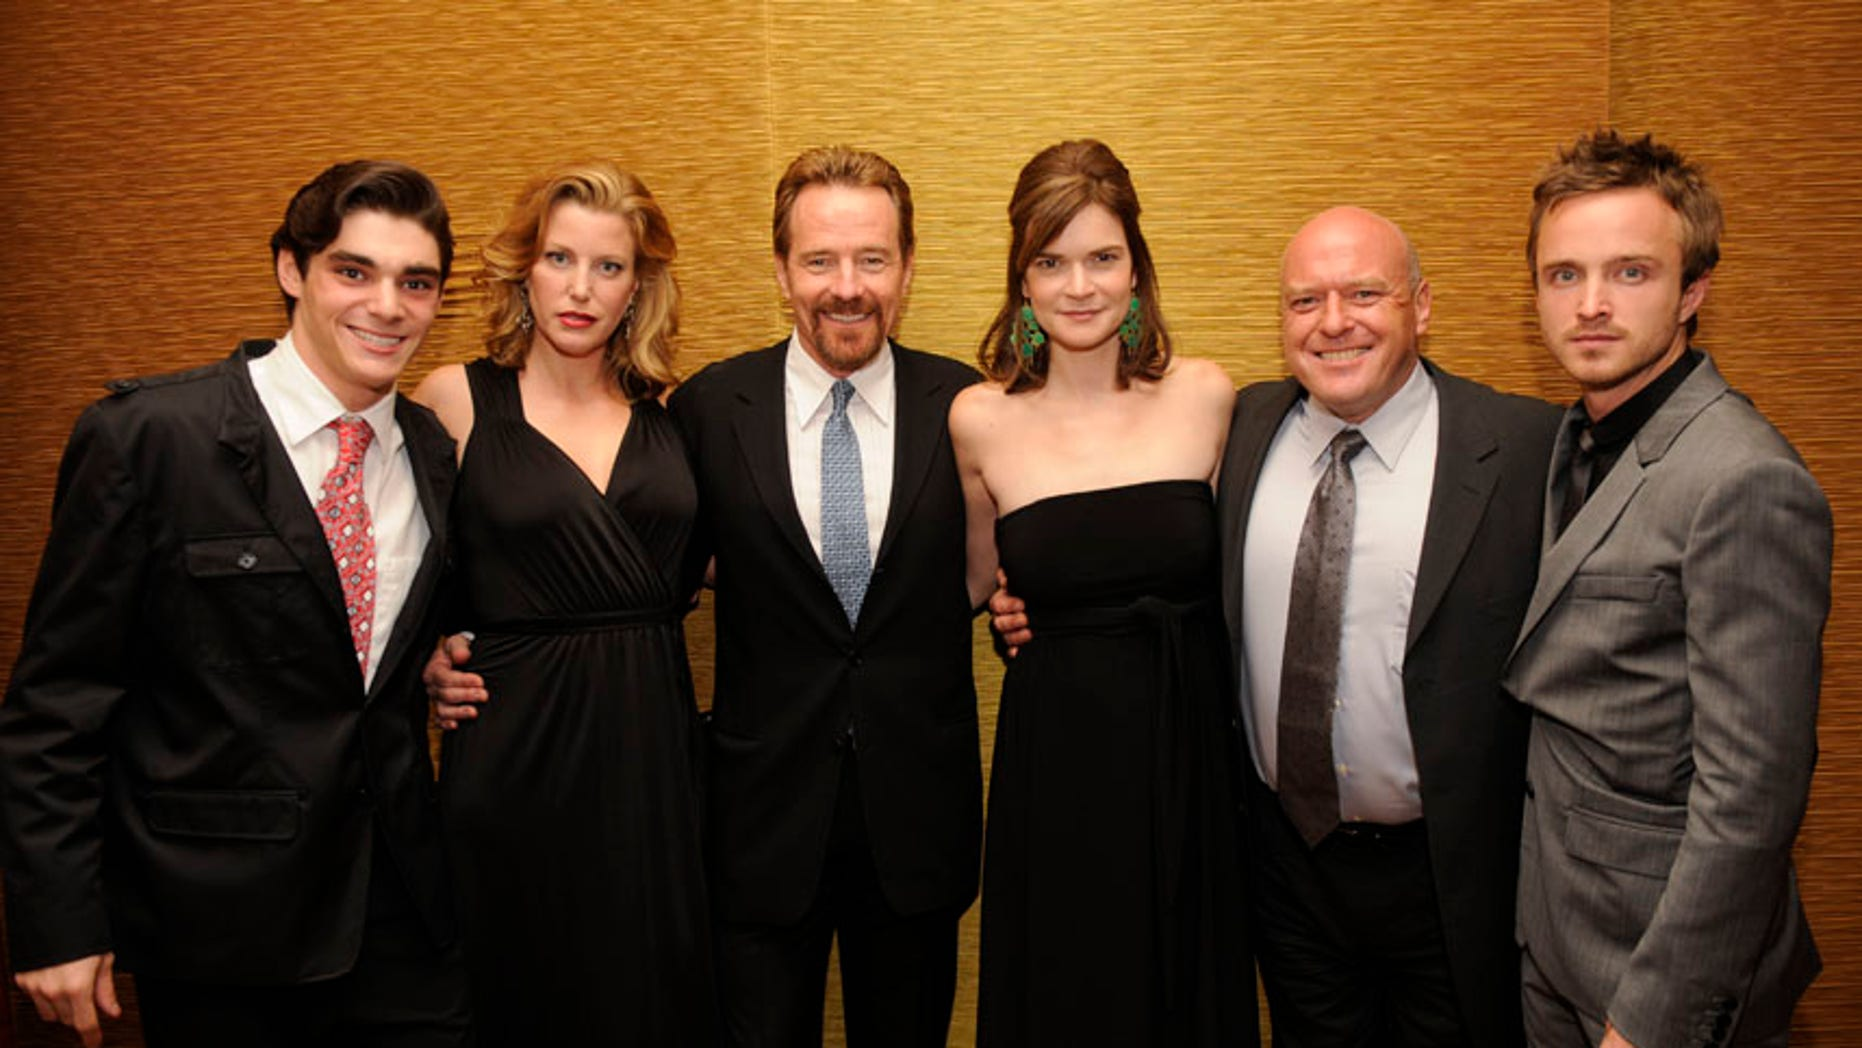 """""""Breaking Bad"""" cast members R.J. Mitte (L-R), Anna Gunn, Bryan Cranston, Betsy Brandt, Dean Norris and Aaron Paul attend the 25th Annual Television Critics Association Awards in Pasadena, California August 1, 2009. REUTERS/Phil McCarten (UNITED STATES ENTERTAINMENT) - RTR26C16"""